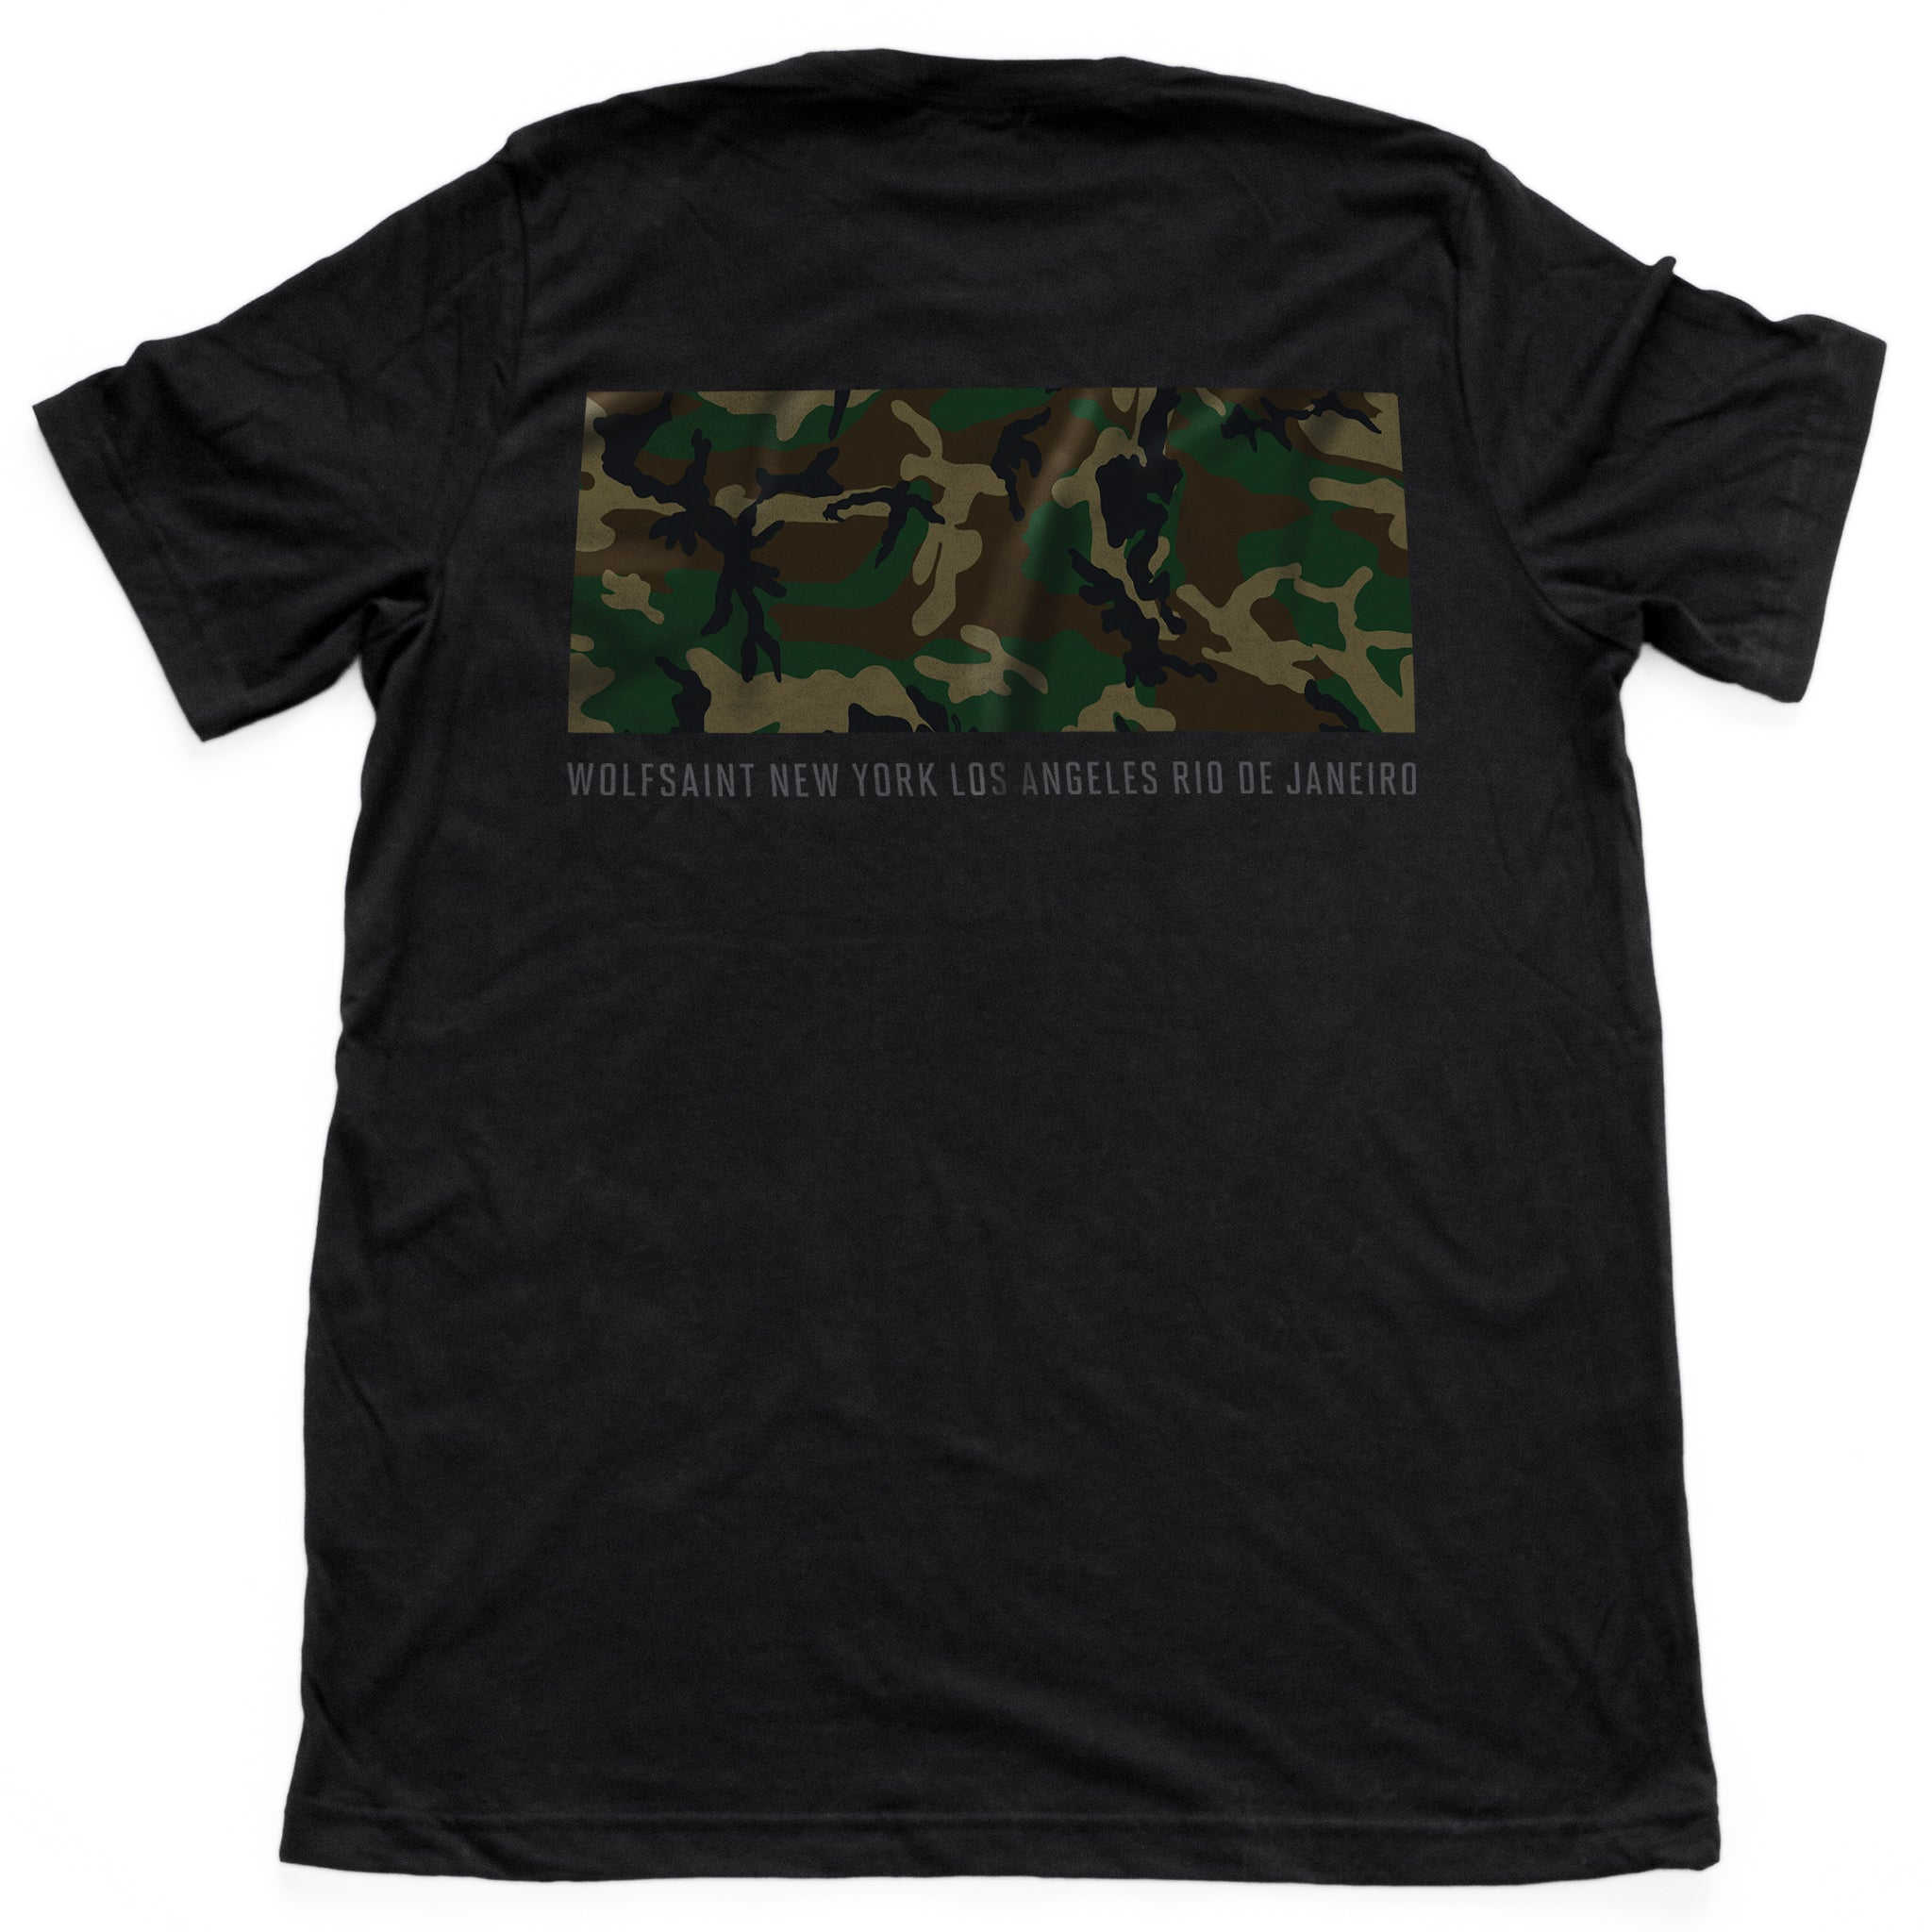 "The back side of a fashionable black t-shirt with a camo / camouflage panel on both sides. On the front there is also a Wolfsaint script logo within the camo panel; on the reverse are the Wolfsaint cities ""New York, Rio de Janeiro, Los Angeles"" listed innsmaller type below the camouflage. From Wolfsaint.net"